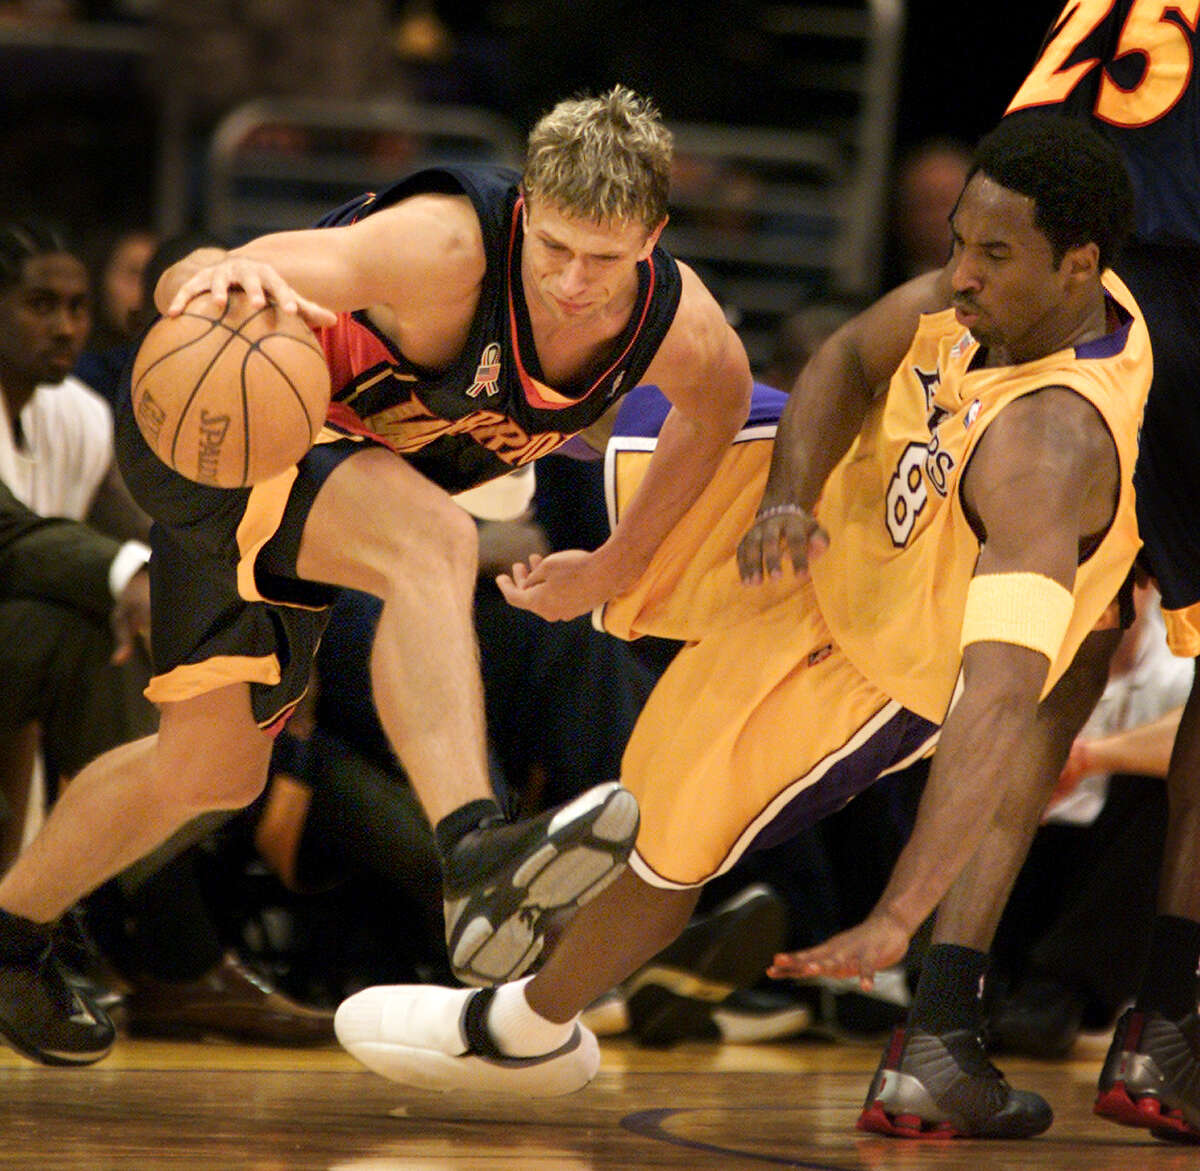 Laker Kobe Bryant gets knocked to the ground while guarding Golden State Warrior Bob Sura in the first half at Staples Center on Dec. 16, 2001.